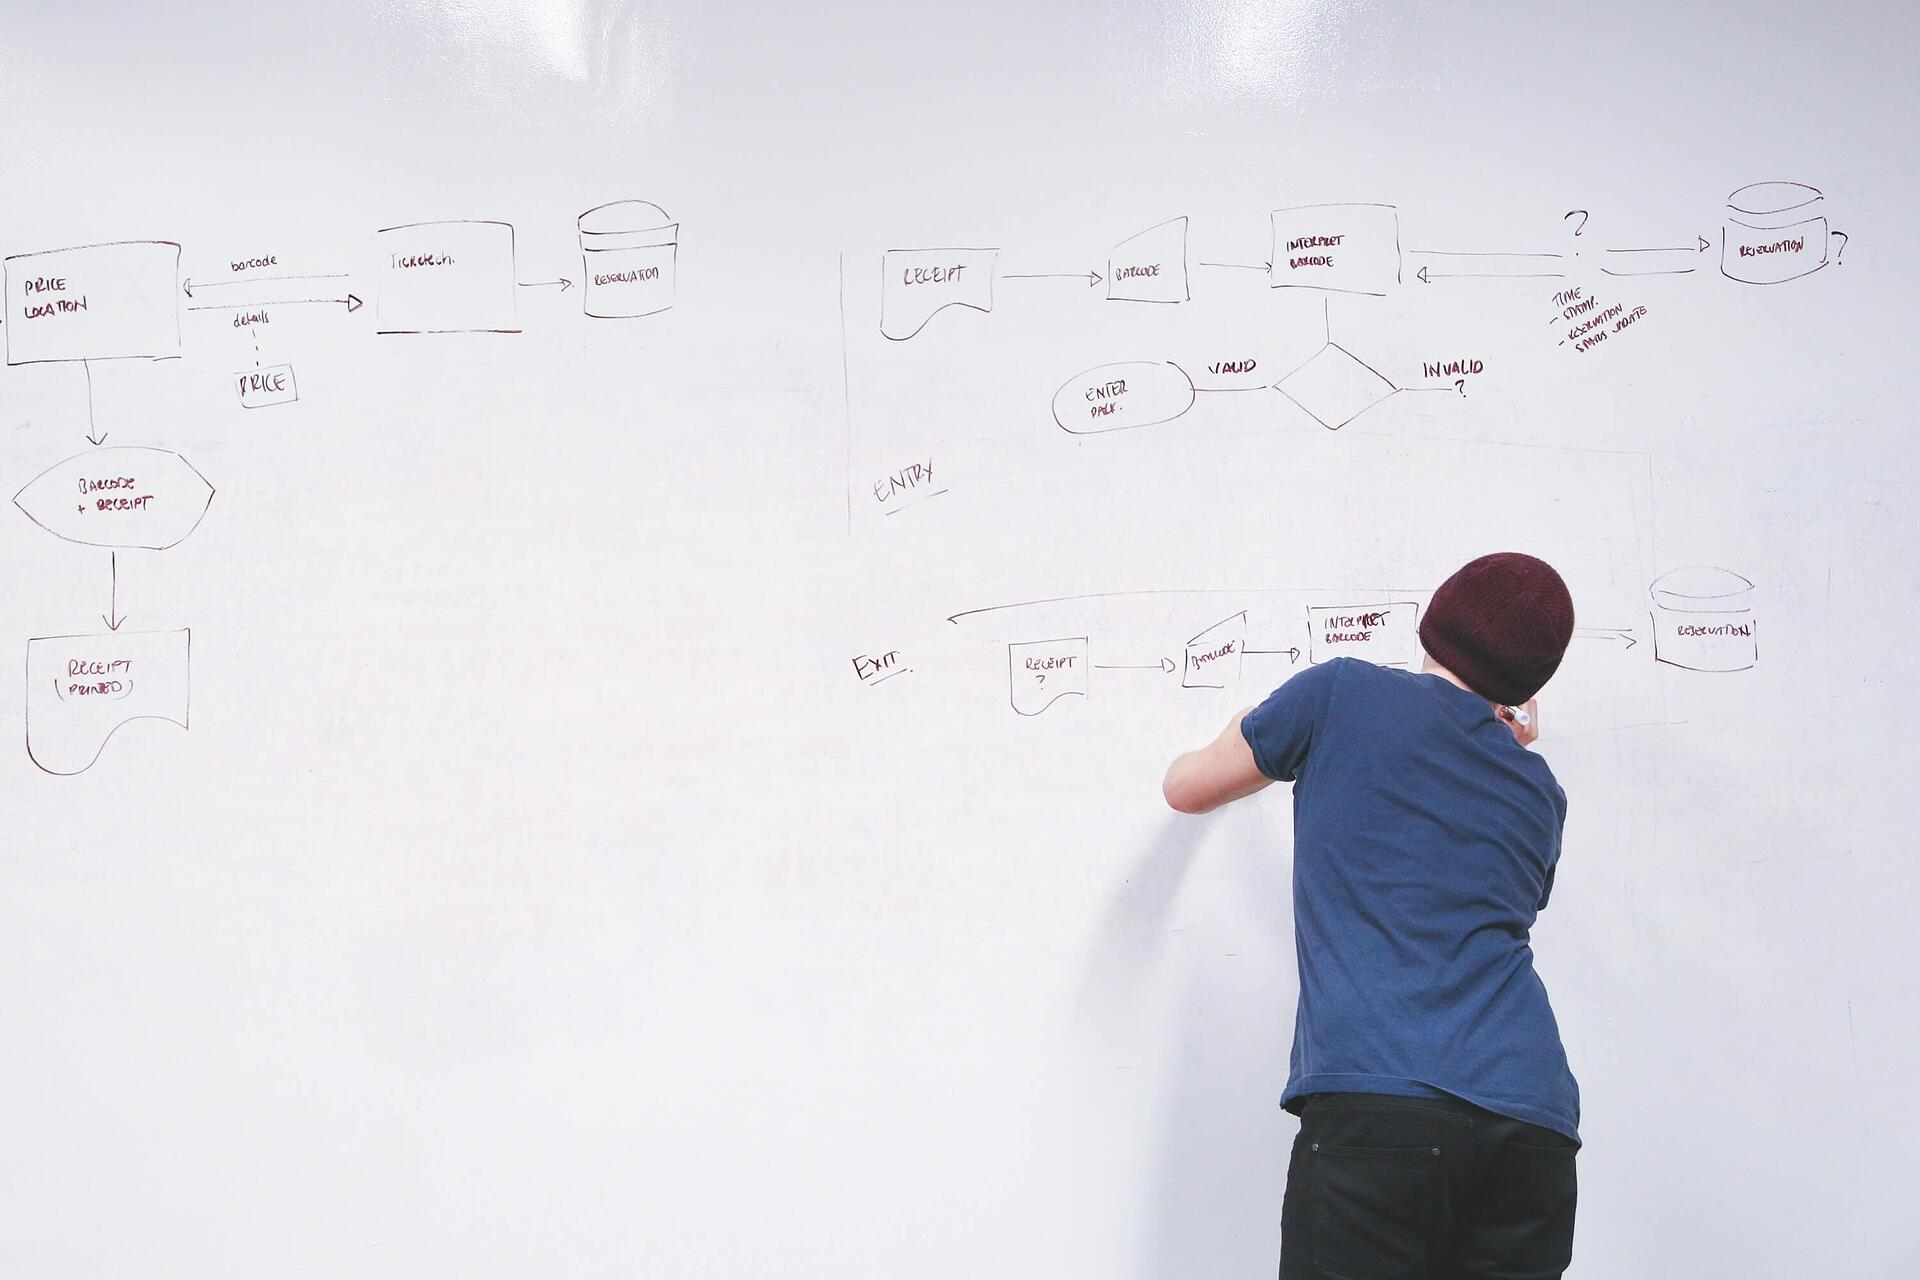 Man mind mapping on whiteboard.